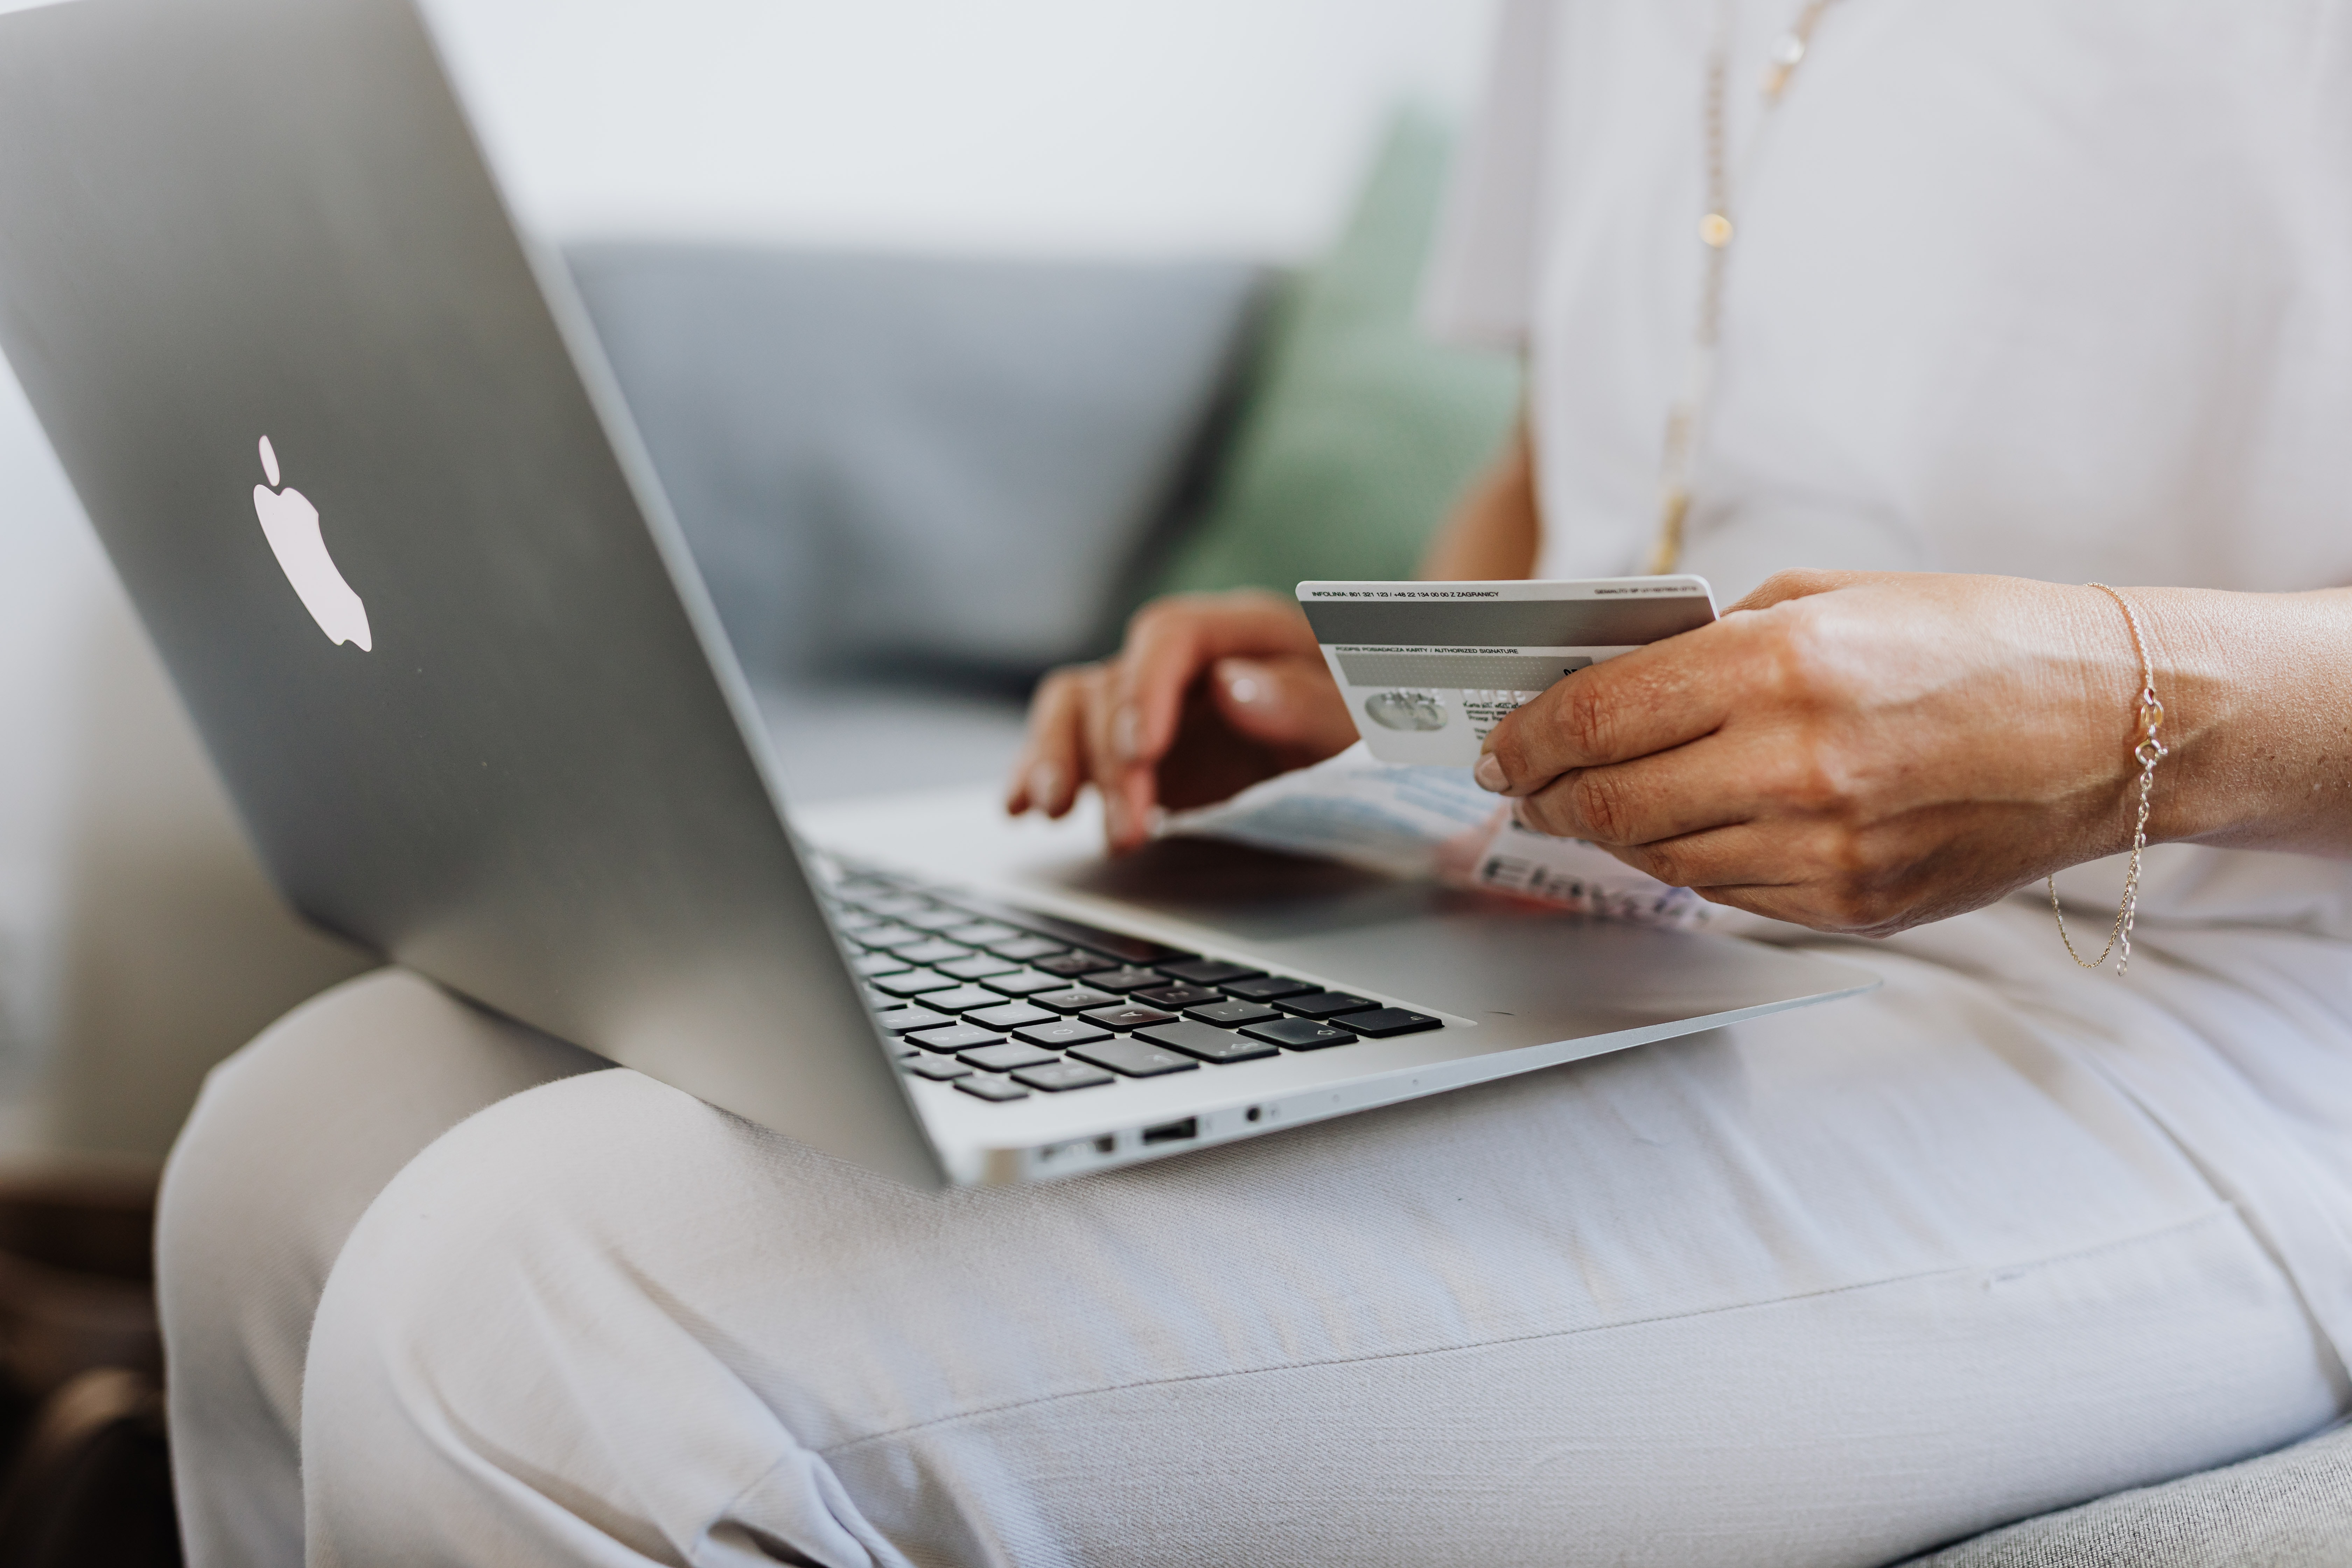 How to AVOID Shopping Scams